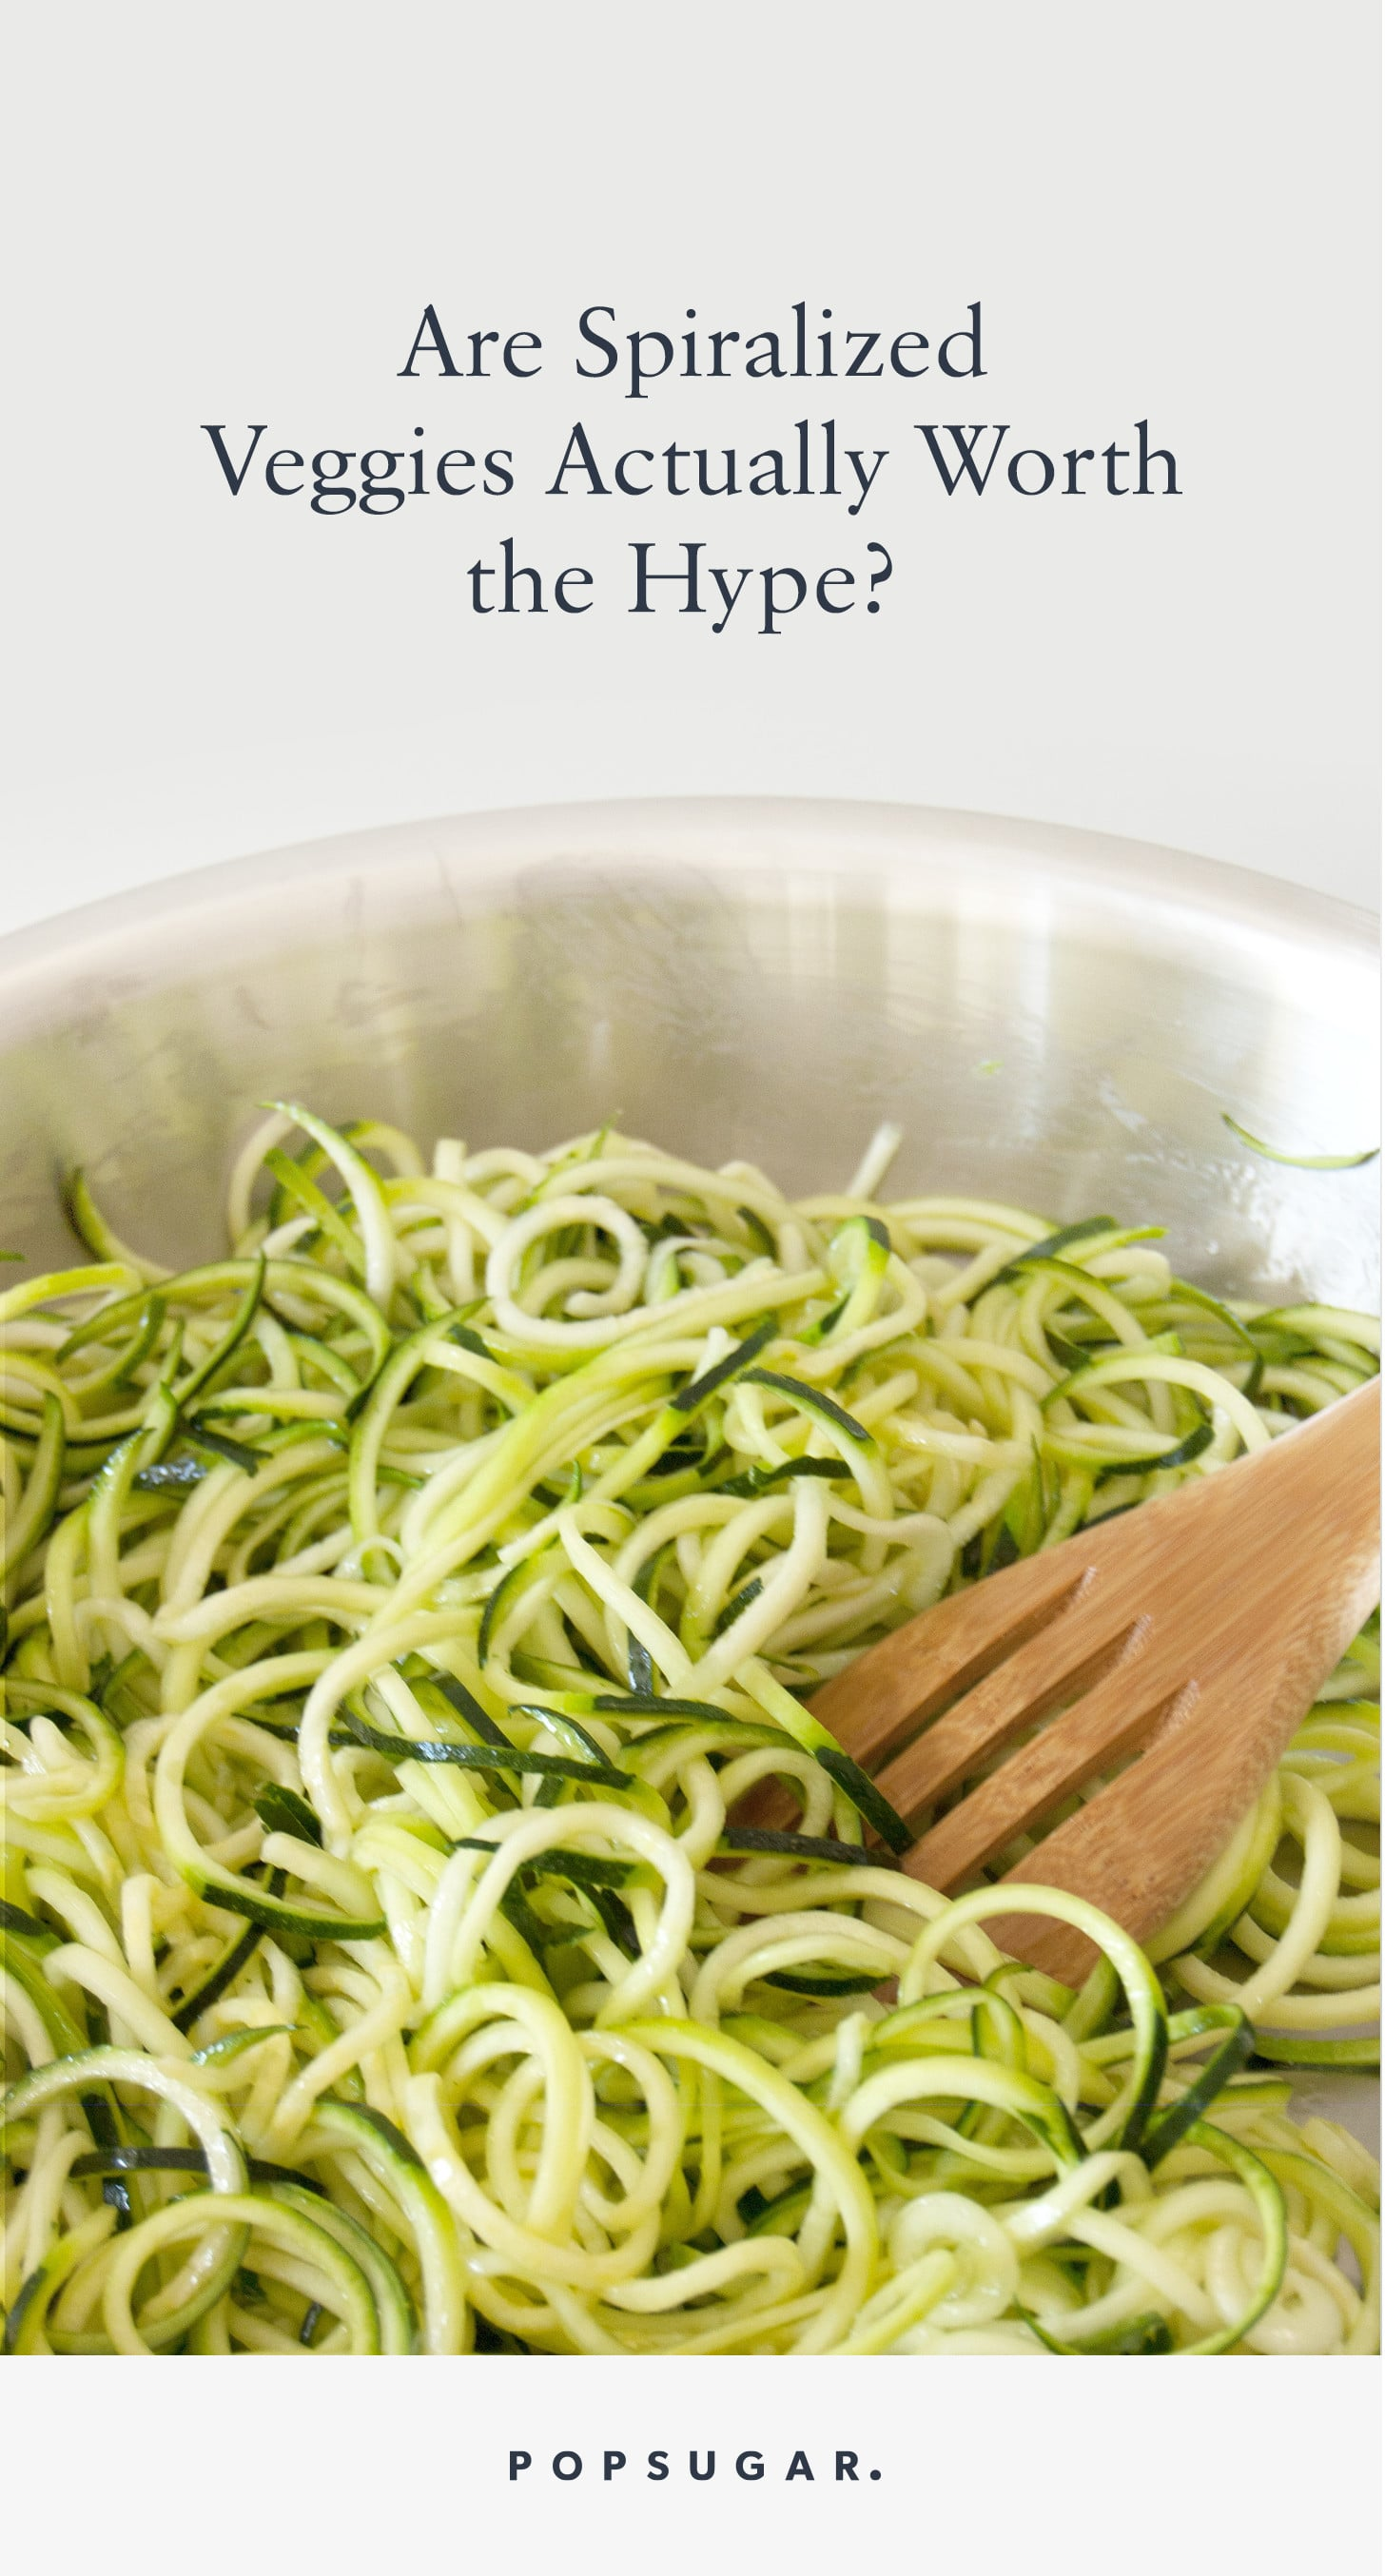 Watch Spiralized Veggies for a Healthy Diet video